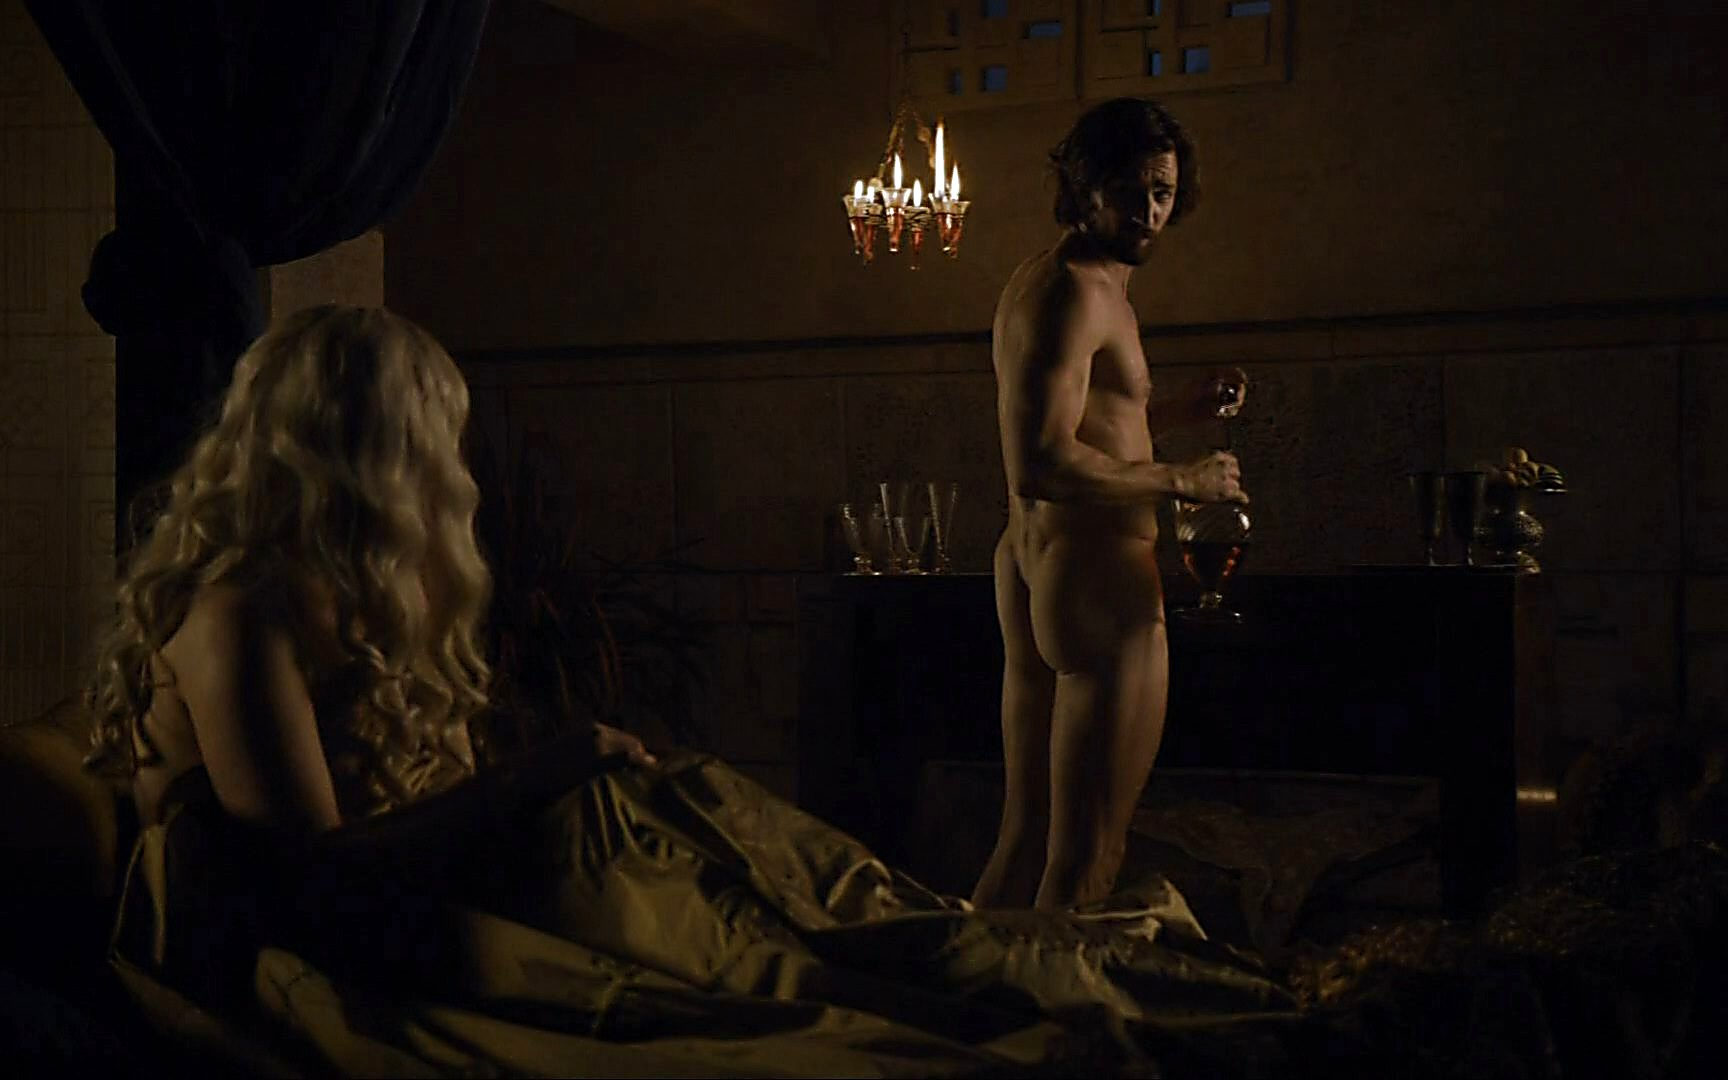 Iwan Rheon sexy shirtless scene July 12, 2015, 6pm